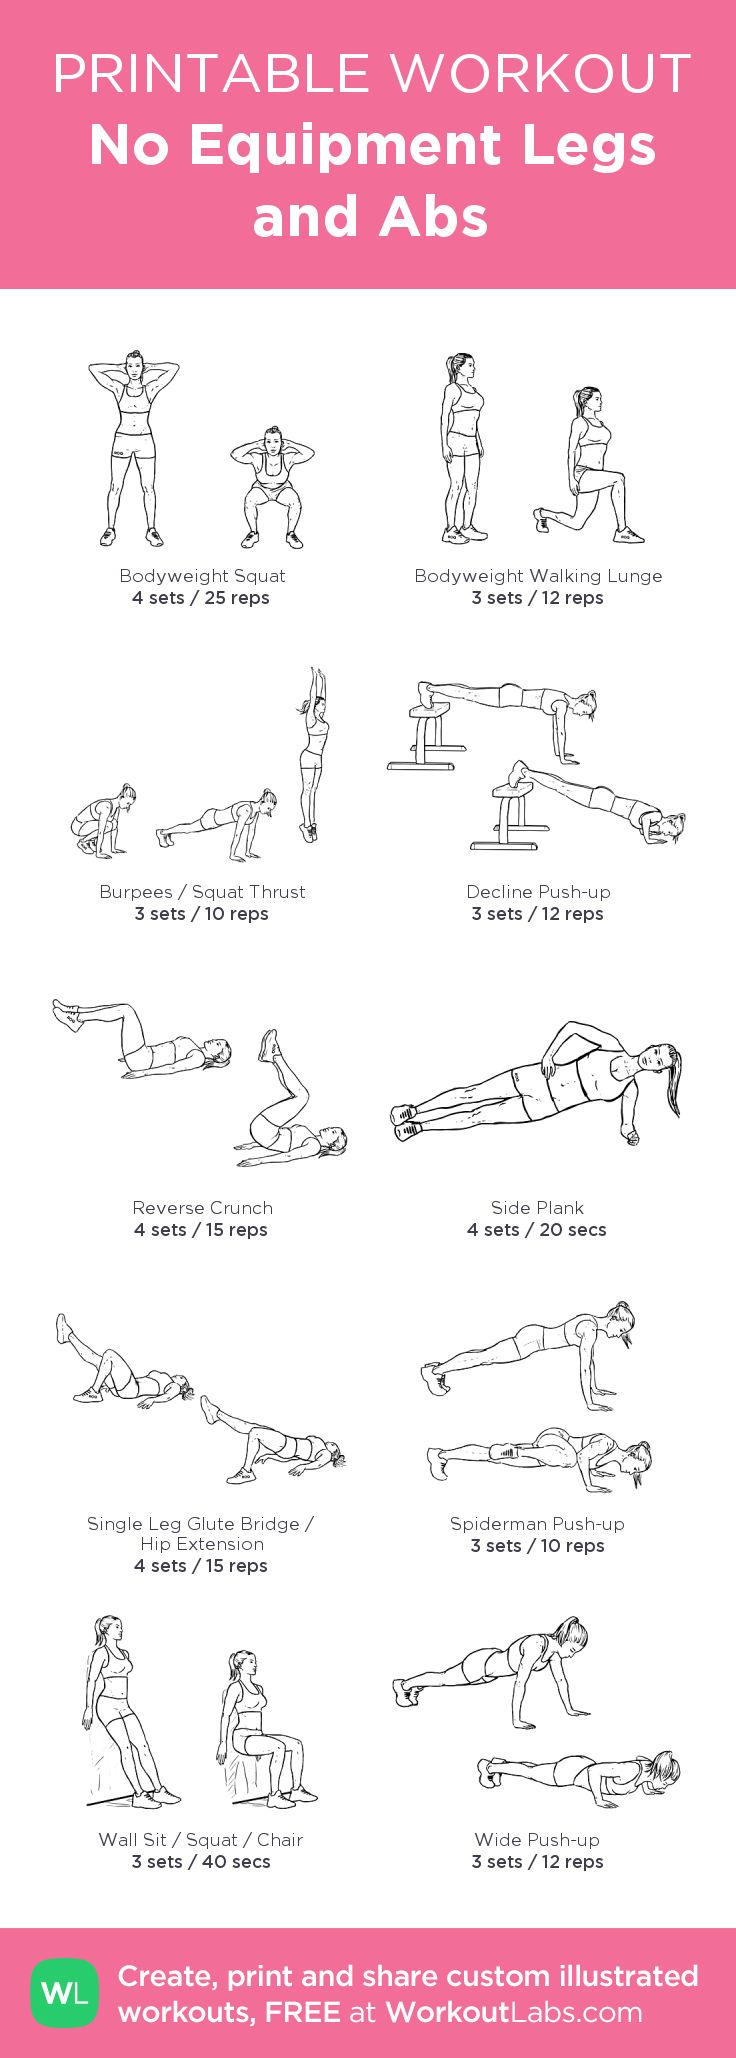 No Equipment Legs and Abs: my visual workout created at WorkoutLabs.com • Click through to customize and download as a FREE PDF! #customworkout